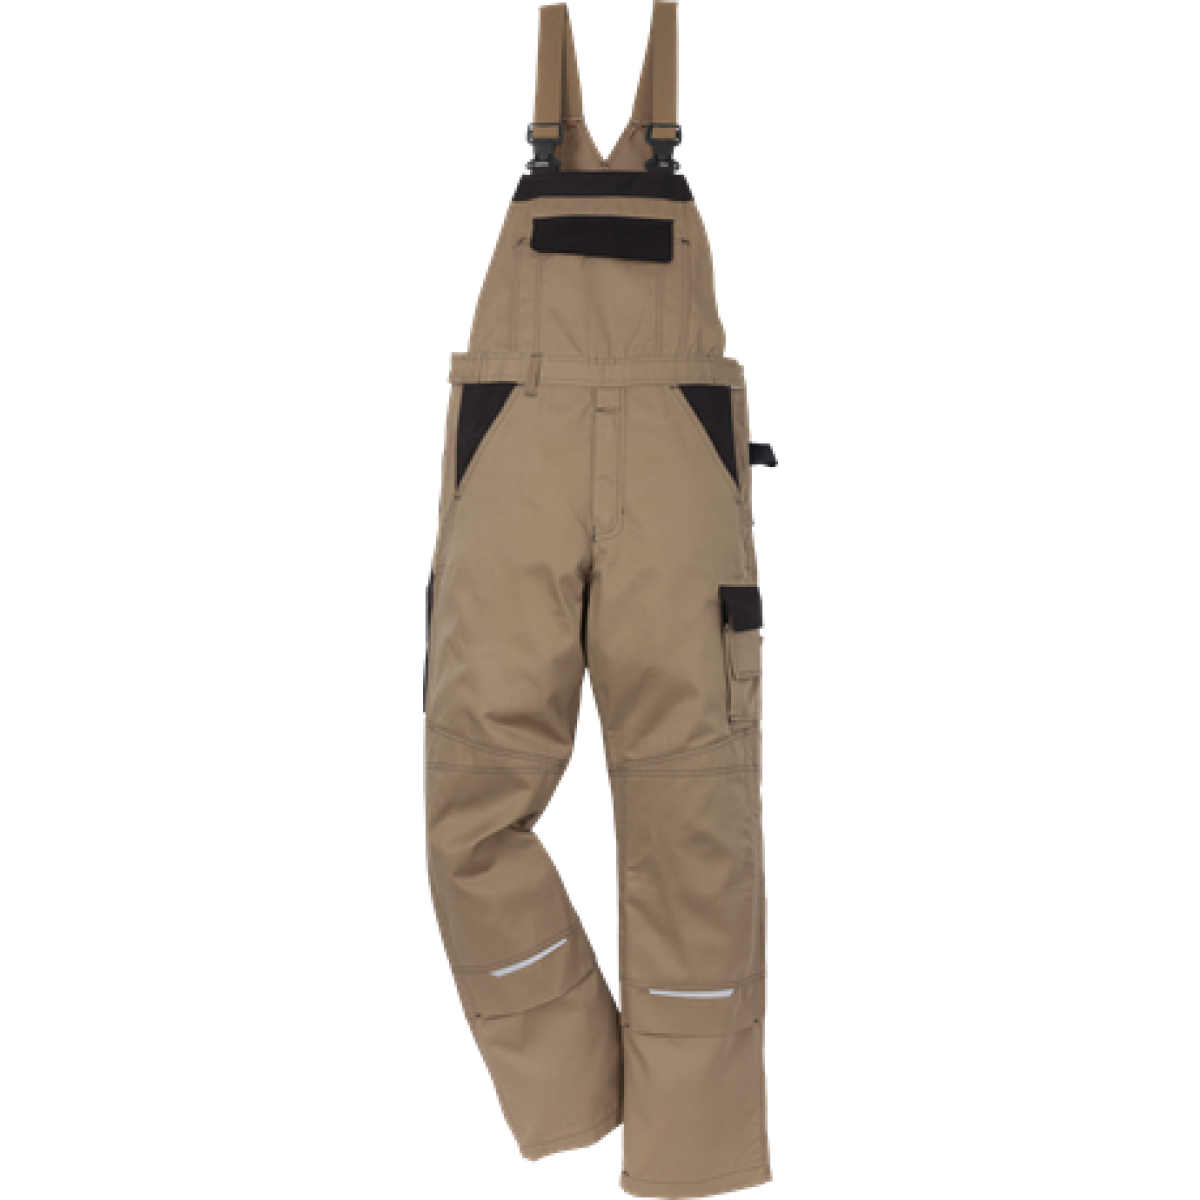 Kansas Icon Overalls Khaki/Sort-32